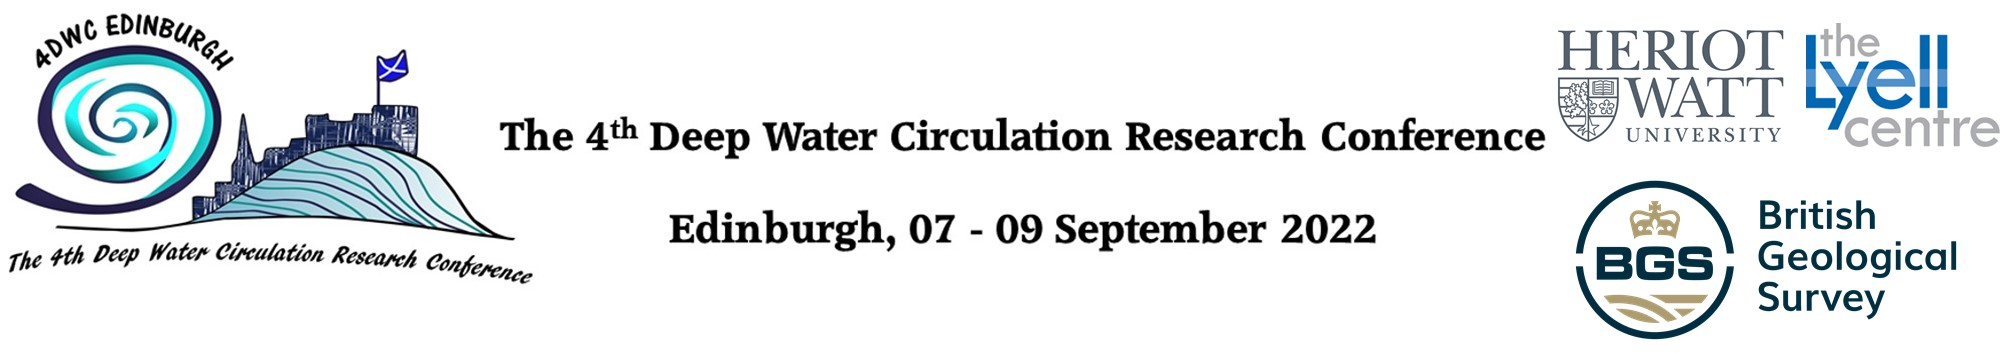 4th Deep Water Circulation Research Conference